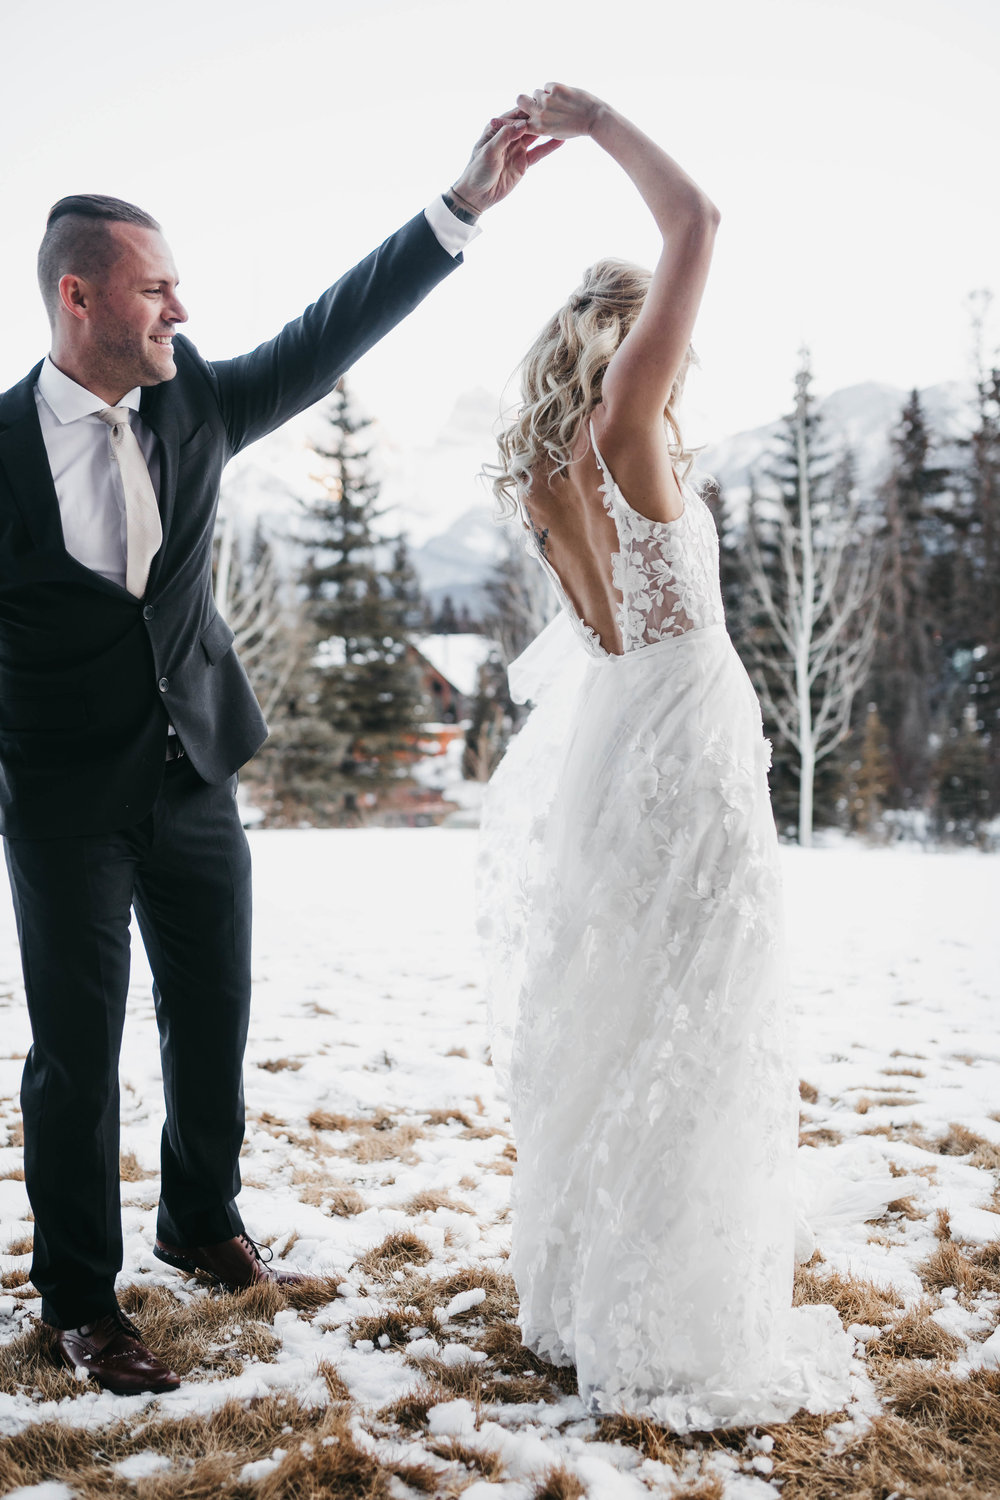 Winter wedding Canmore bride and groom twirling in the snow, Malcolm hotel wedding.jpg